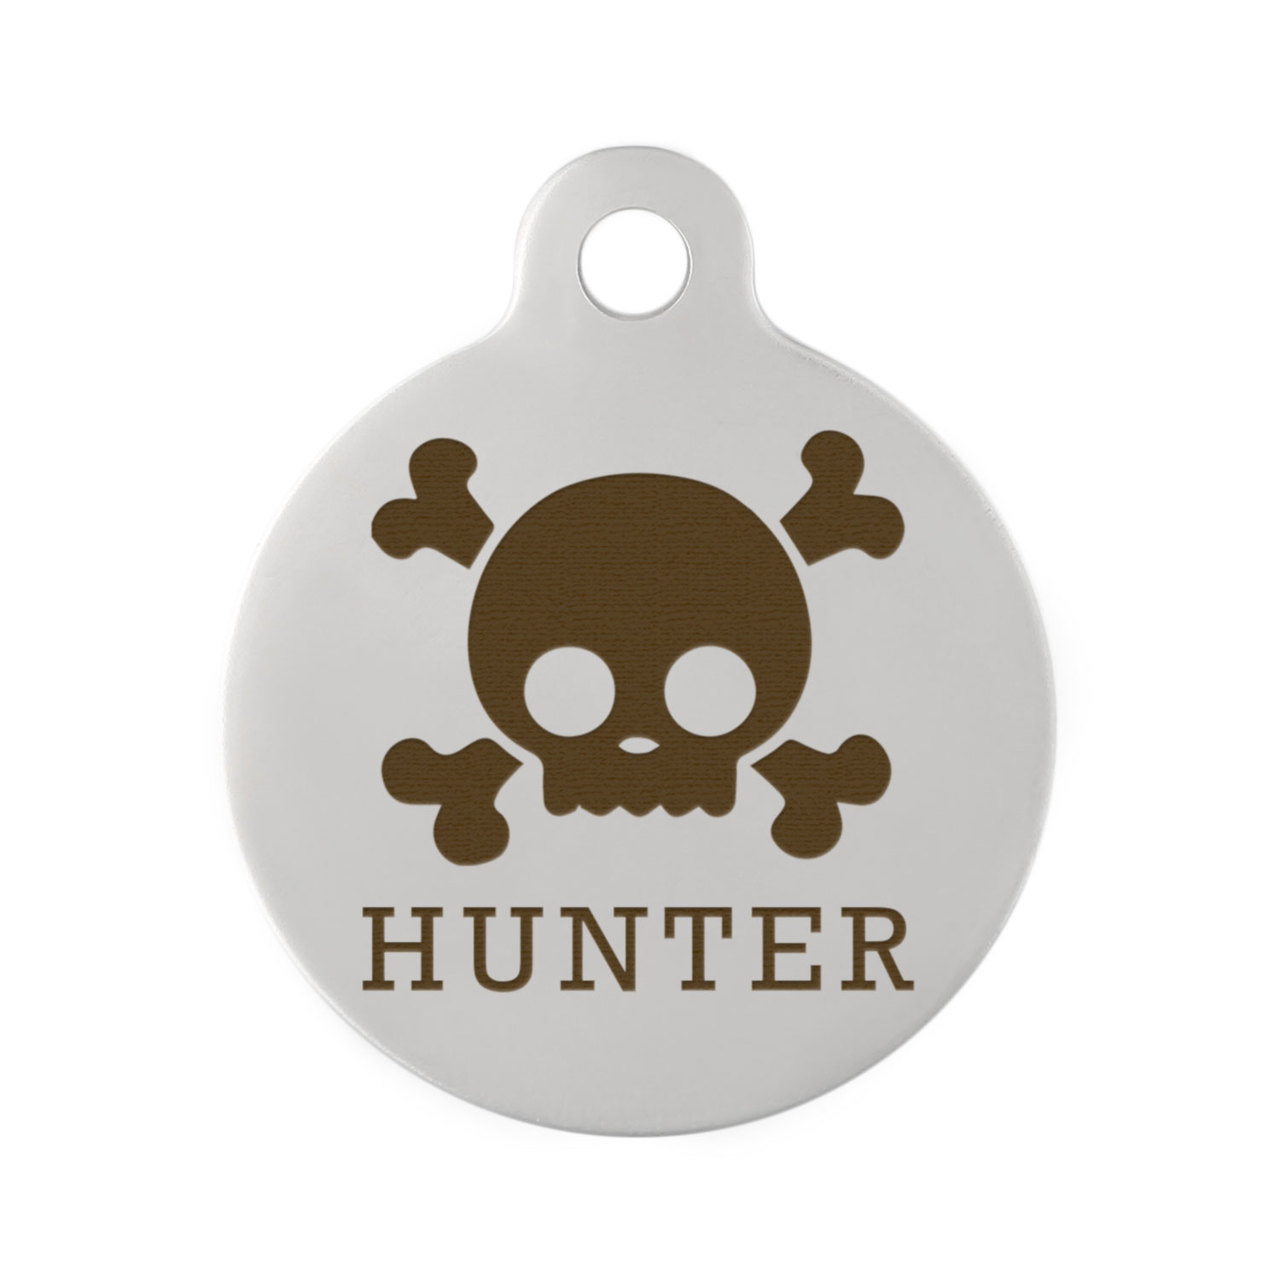 Skull Design Dog ID Tags - Skull Stainless Steel